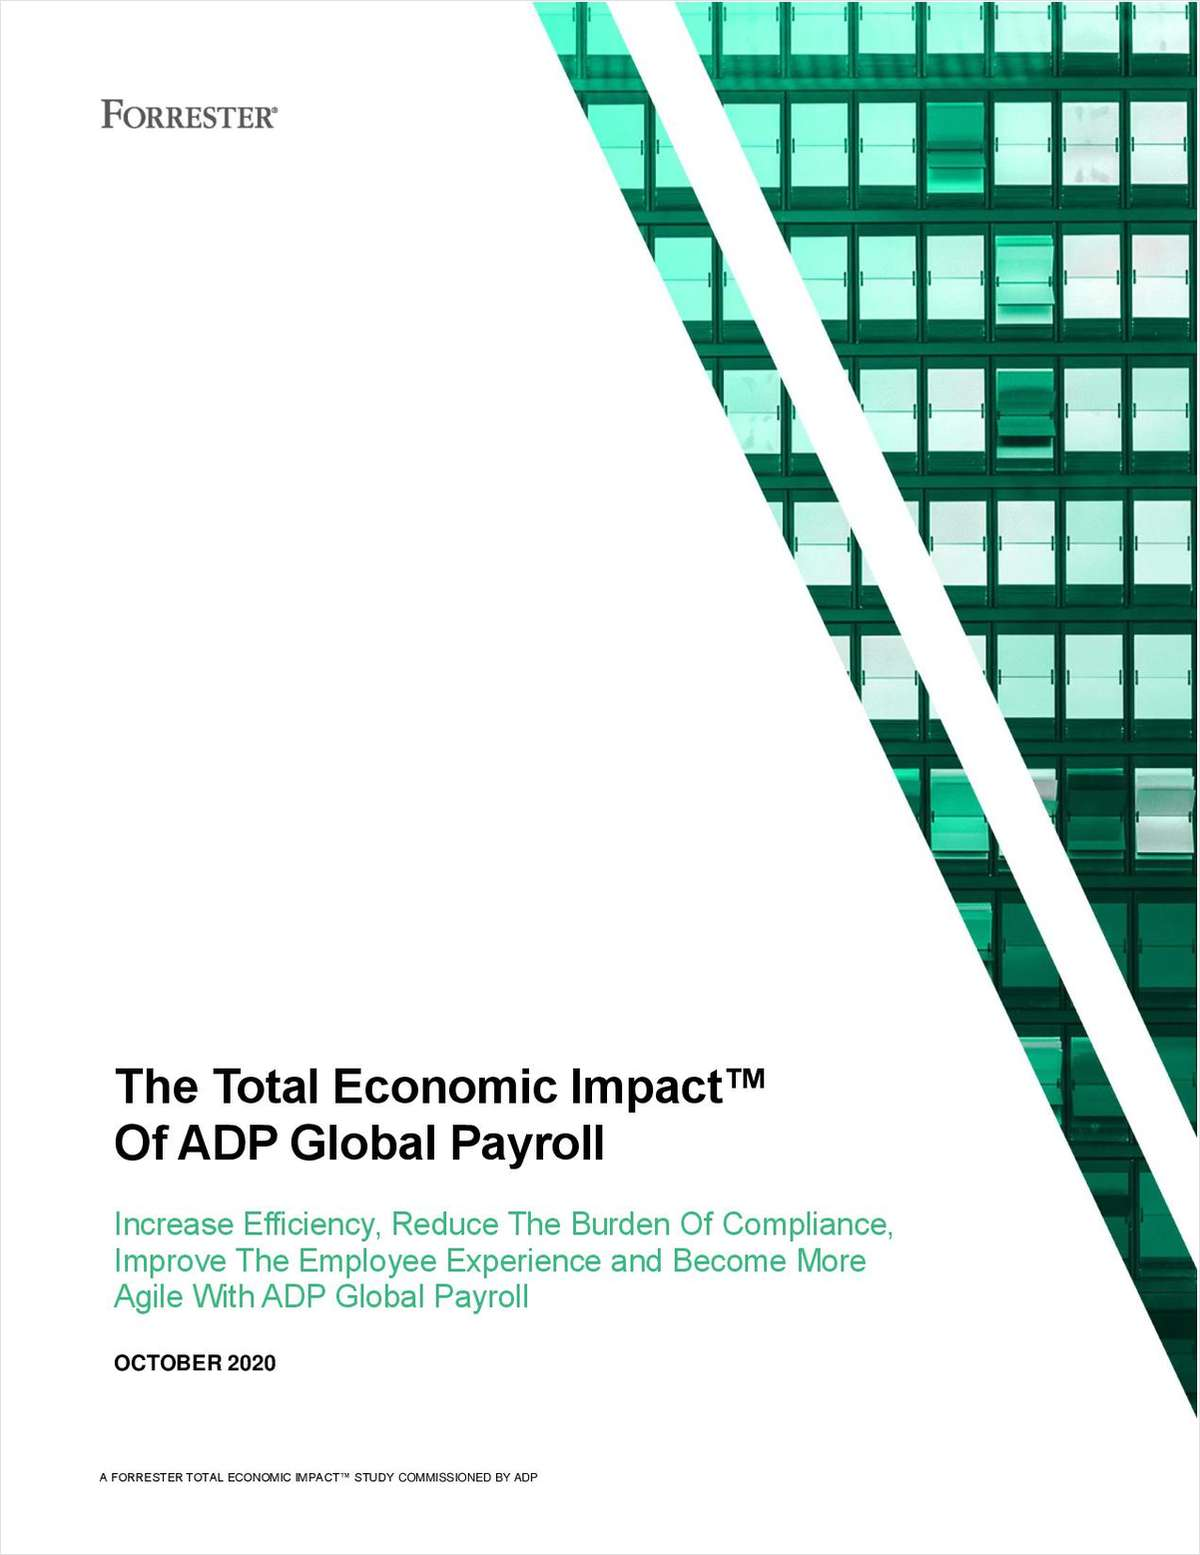 The Total Economic Impact™ Of ADP Global Payroll